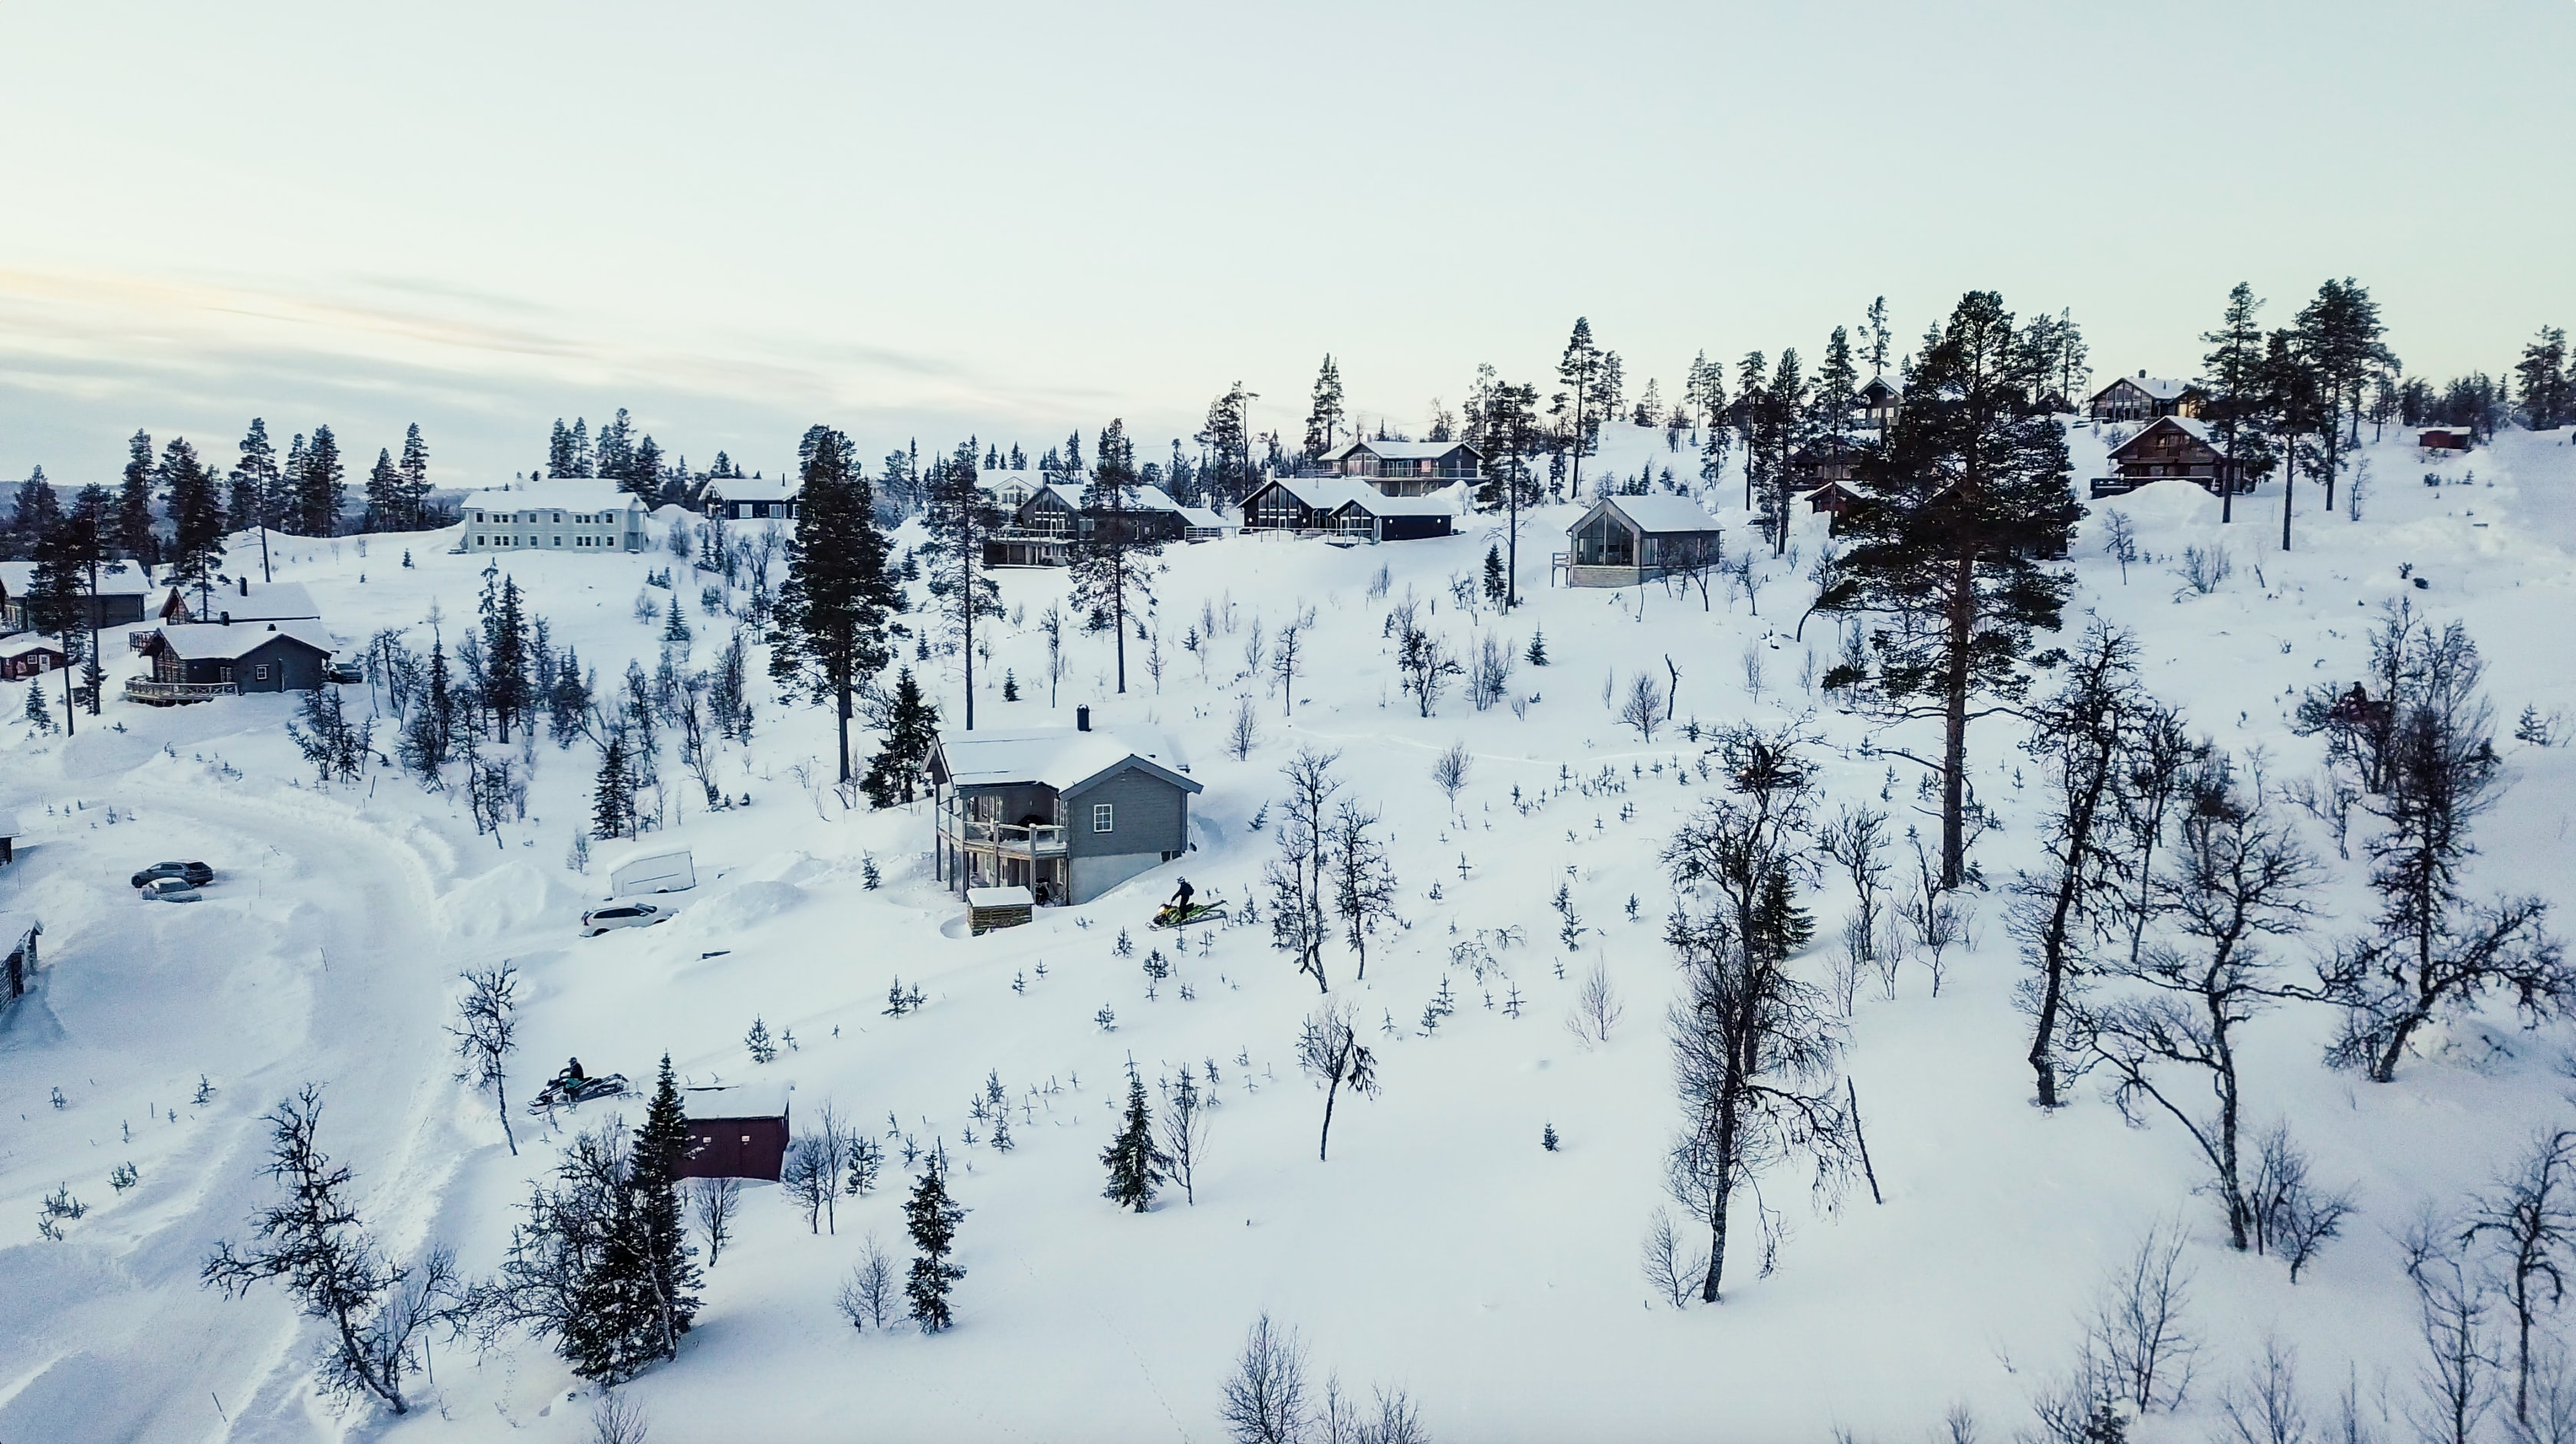 aerial shot of snow covered village